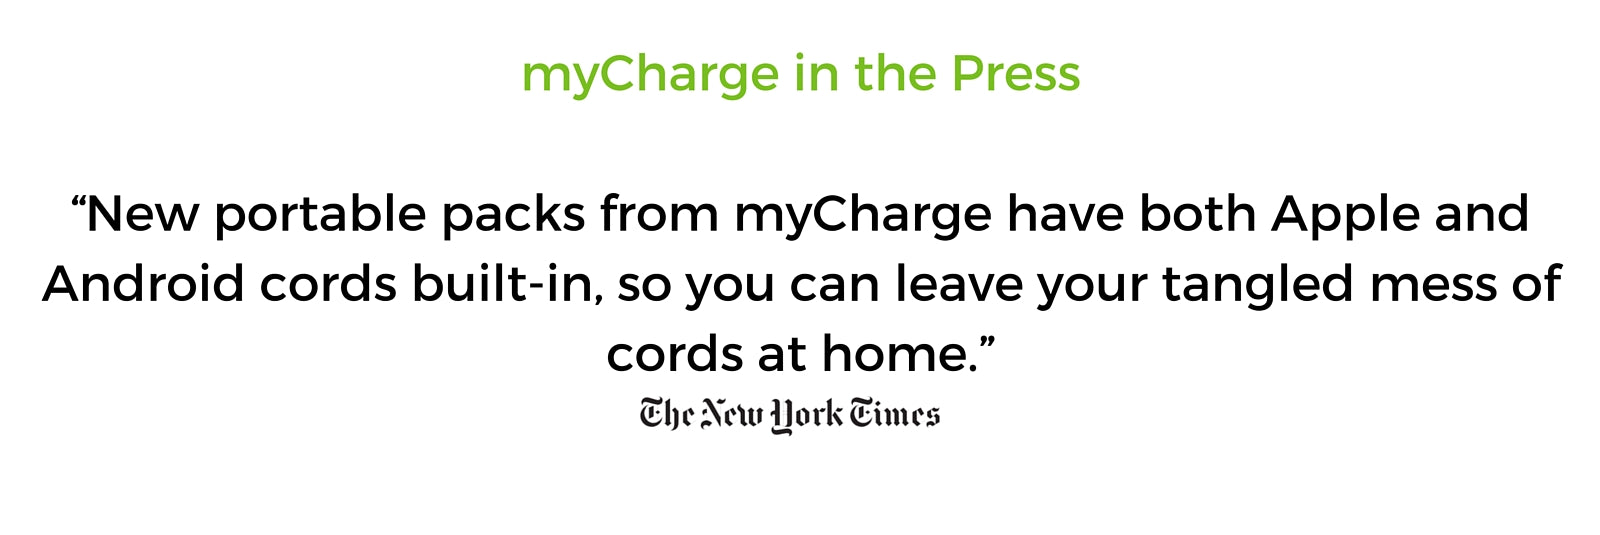 myCharge Press Clip - New York Times